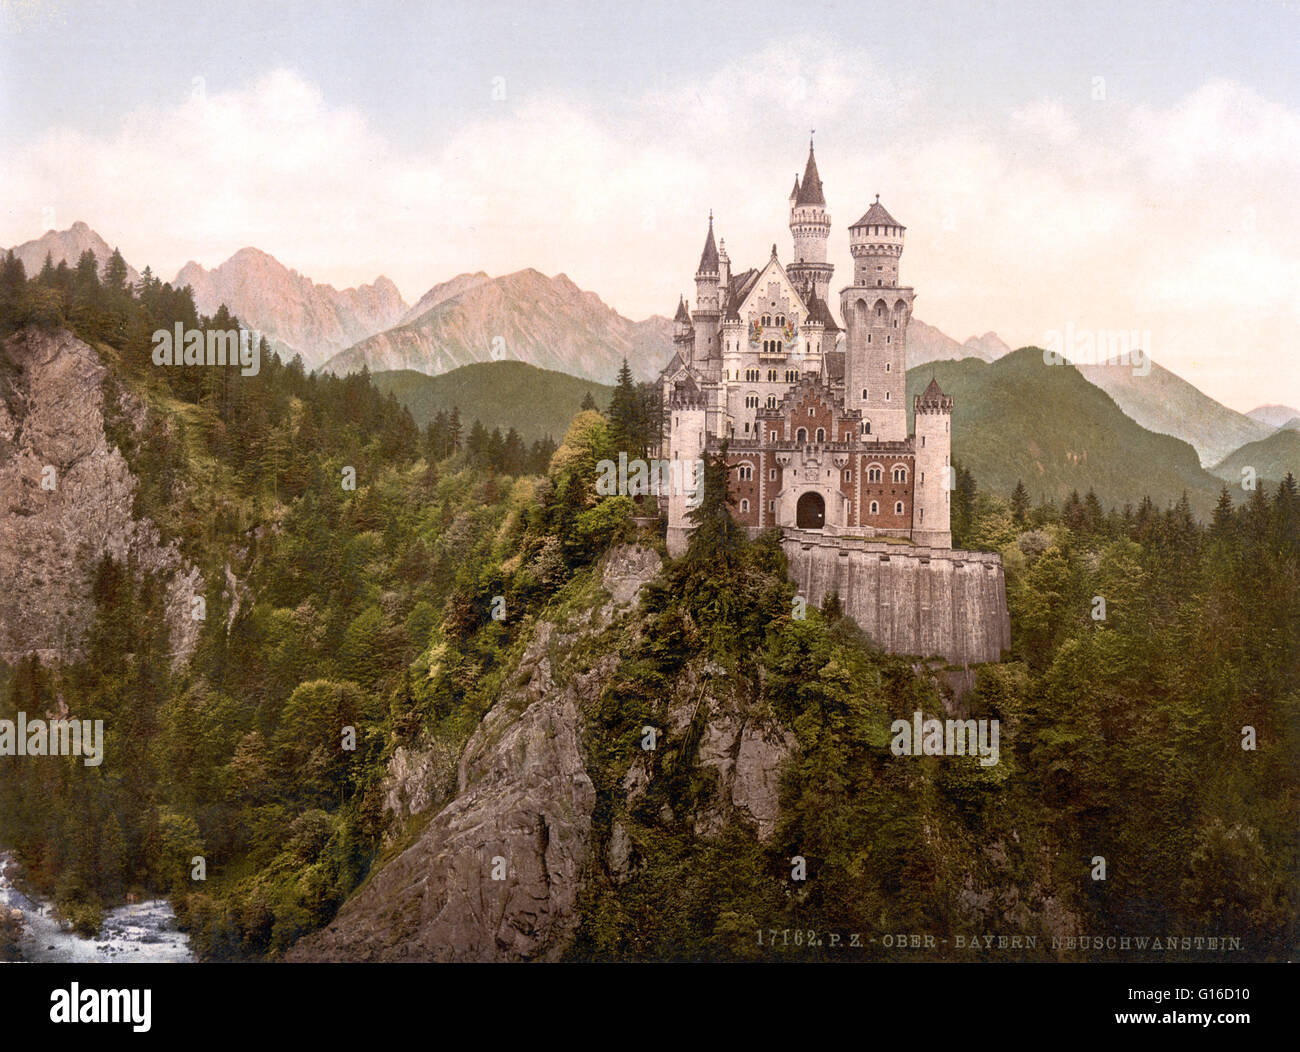 Neuschwanstein Castle is a 19th century Romanesque Revival palace on a rugged hill above the village of Hohenschwangau - Stock Image